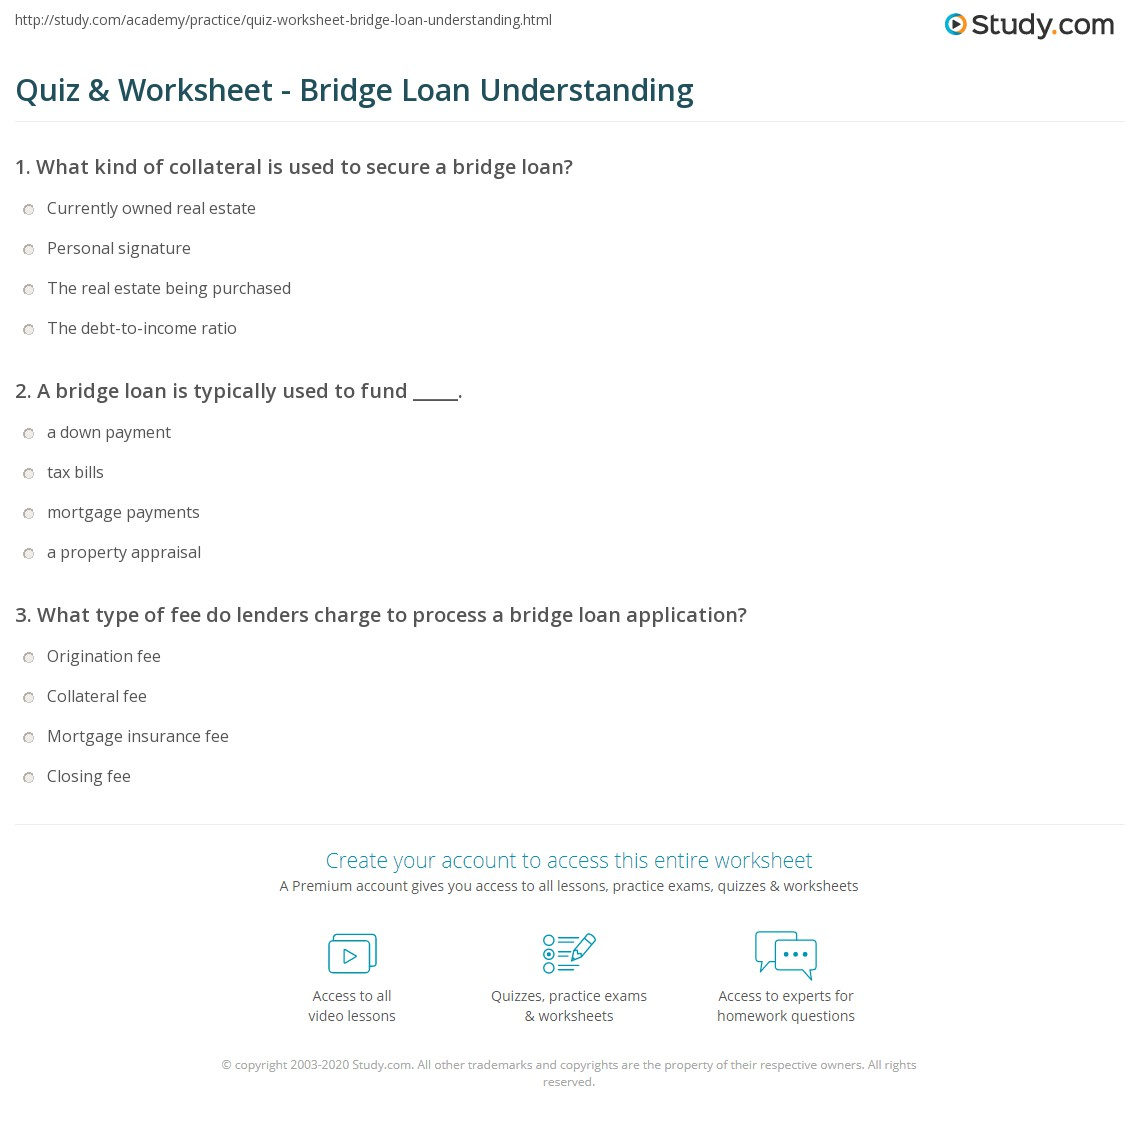 Quiz W Ksheet Bridge Lo N Underst Nd G Study